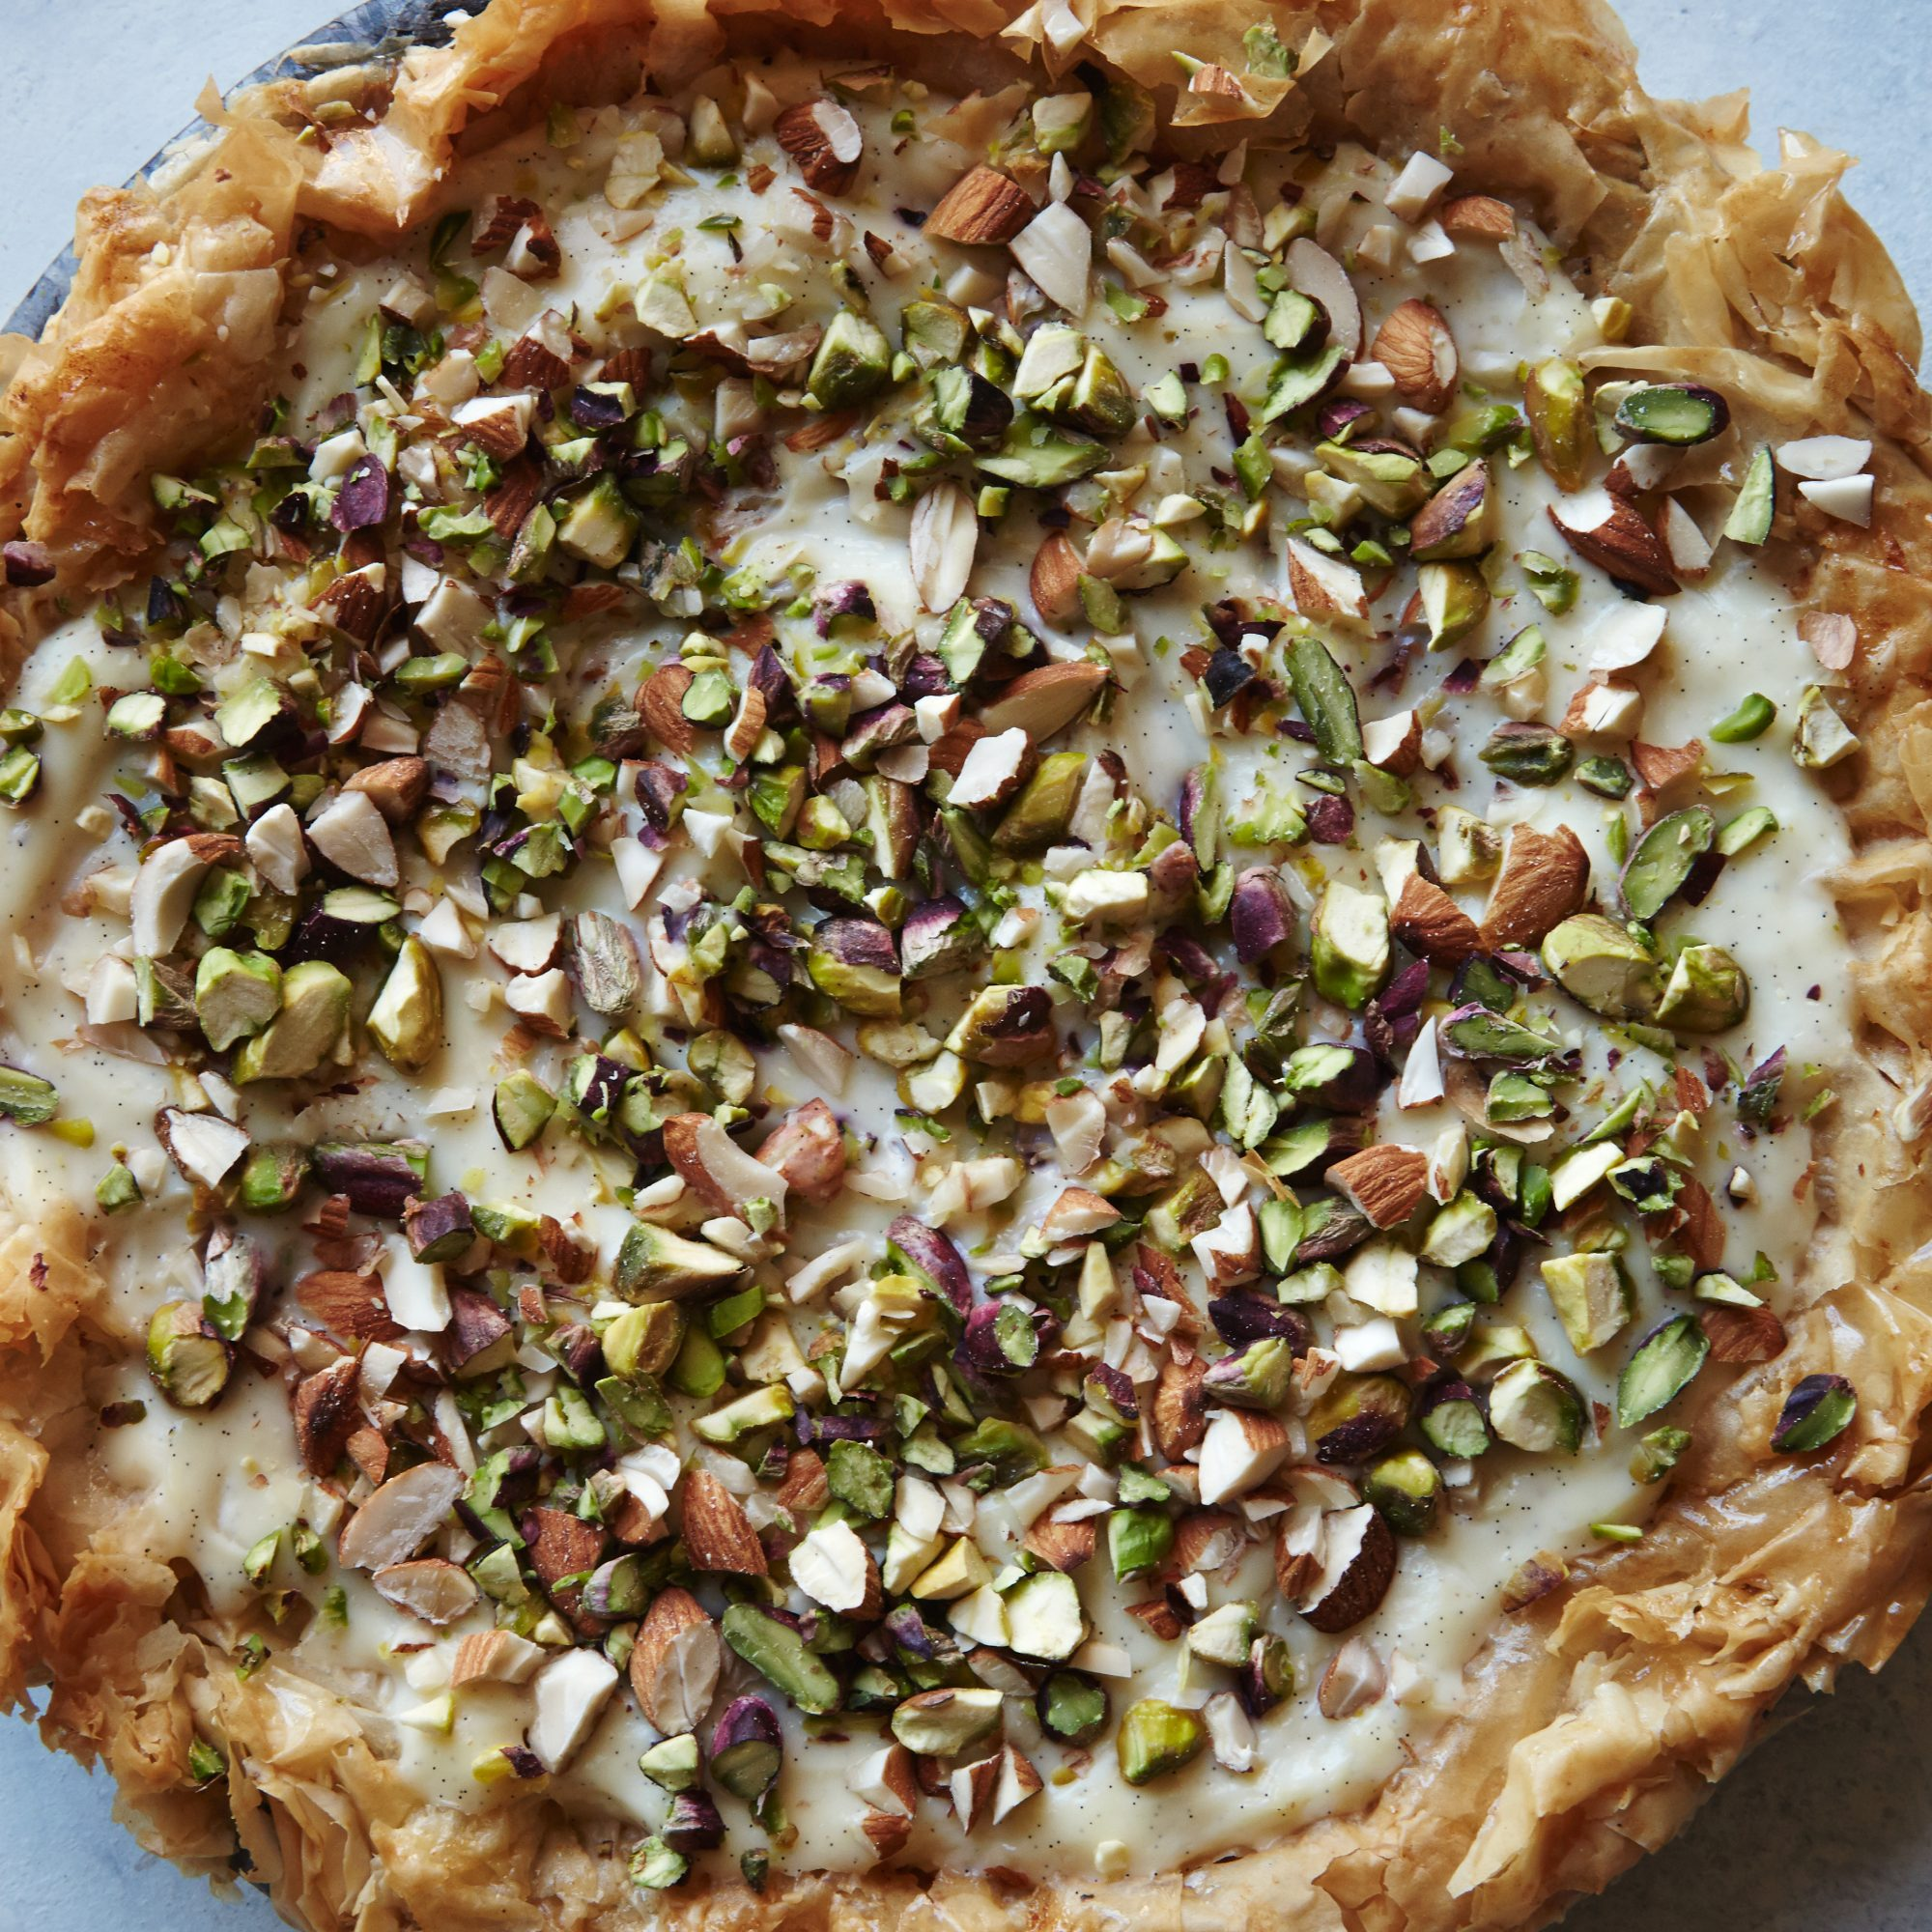 Custard Phyllo Pie With Almonds and Pistachios